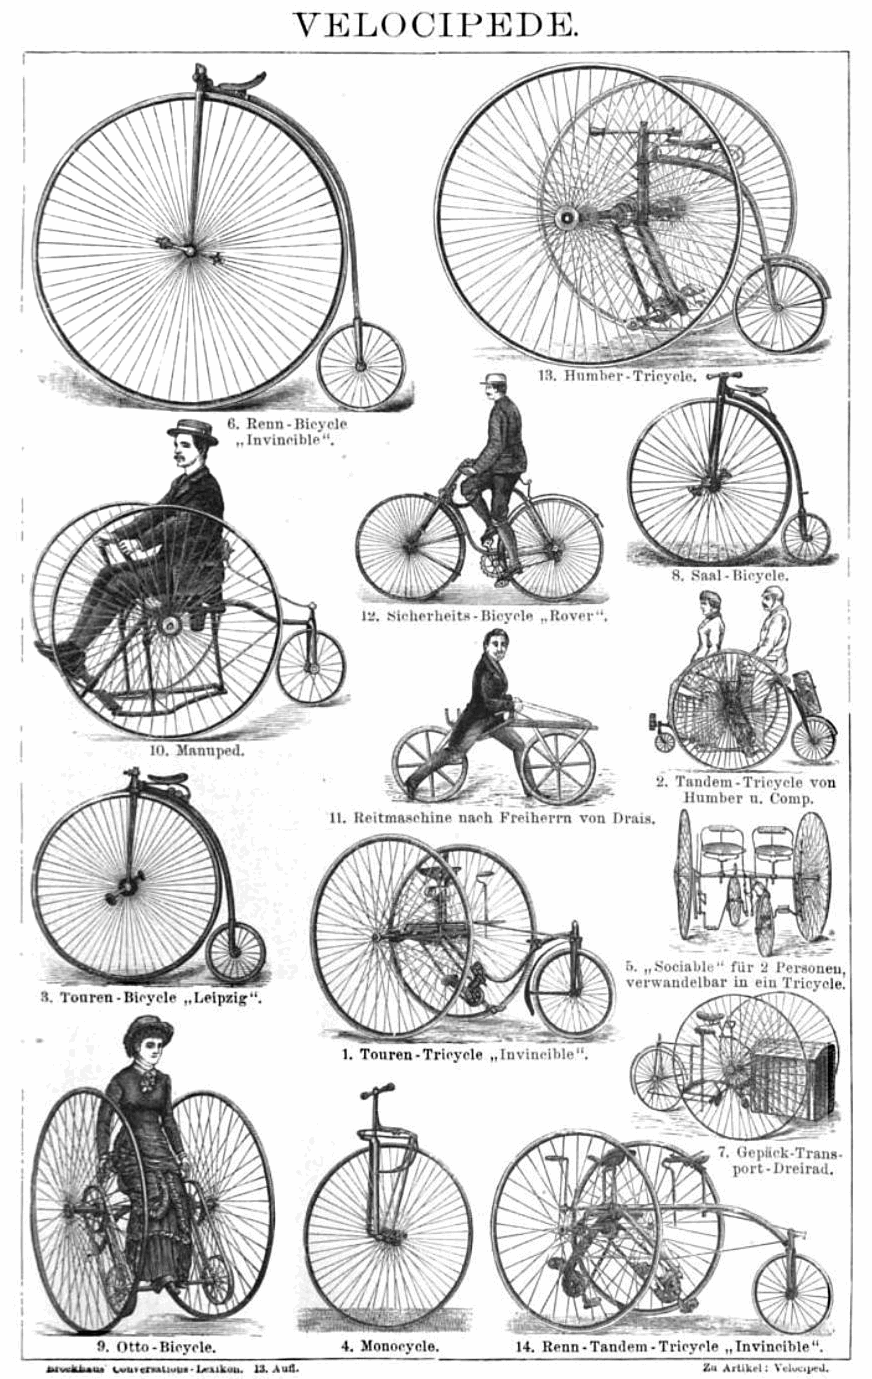 Velocipede - Wikipedia